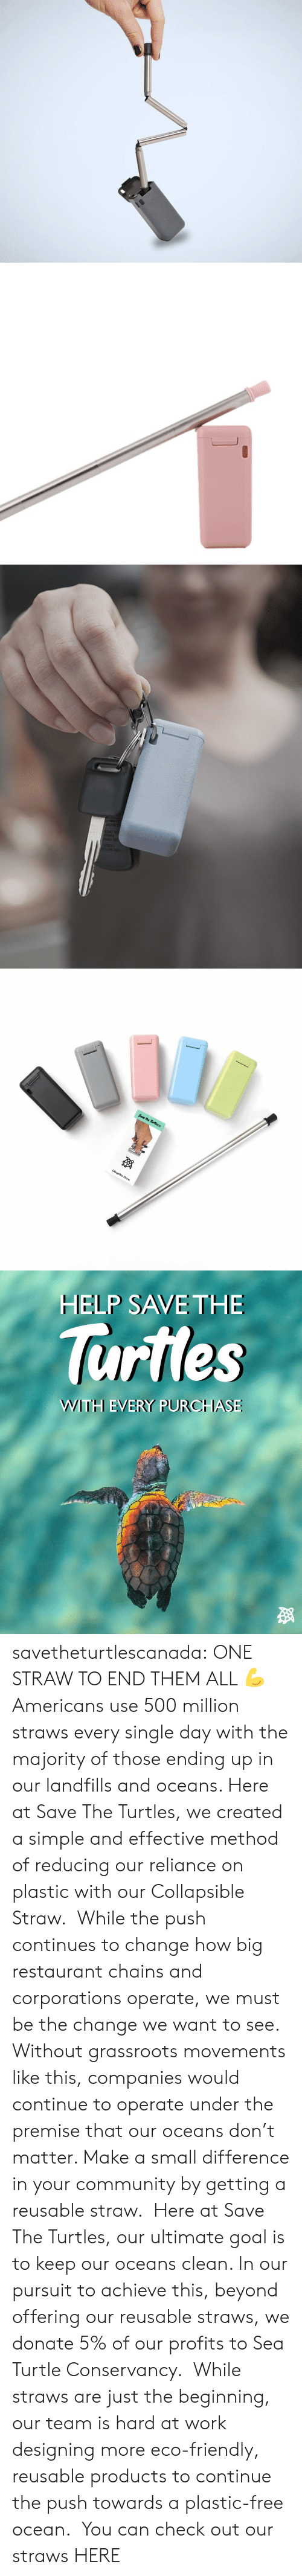 Community, Tumblr, and Work: Collapsible Strow   HELP SAVE THE  lurtles  WWITH EVERY PURCHASE savetheturtlescanada: ONE STRAW TO END THEM ALL💪 Americans use 500 million straws every single day with the majority of those ending up in our landfills and oceans. Here at Save The Turtles, we created a simple and effective method of reducing our reliance on plastic with our Collapsible Straw. While the push continues to change how big restaurant chains and corporations operate, we must be the change we want to see. Without grassroots movements like this, companies would continue to operate under the premise that our oceans don't matter. Make a small difference in your community by getting a reusable straw. Here at Save The Turtles, our ultimate goal is to keep our oceans clean. In our pursuit to achieve this, beyond offering our reusable straws, we donate 5% of our profits to Sea Turtle Conservancy. While straws are just the beginning, our team is hard at work designing more eco-friendly, reusable products to continue the push towards a plastic-free ocean. You can check out our straws HERE